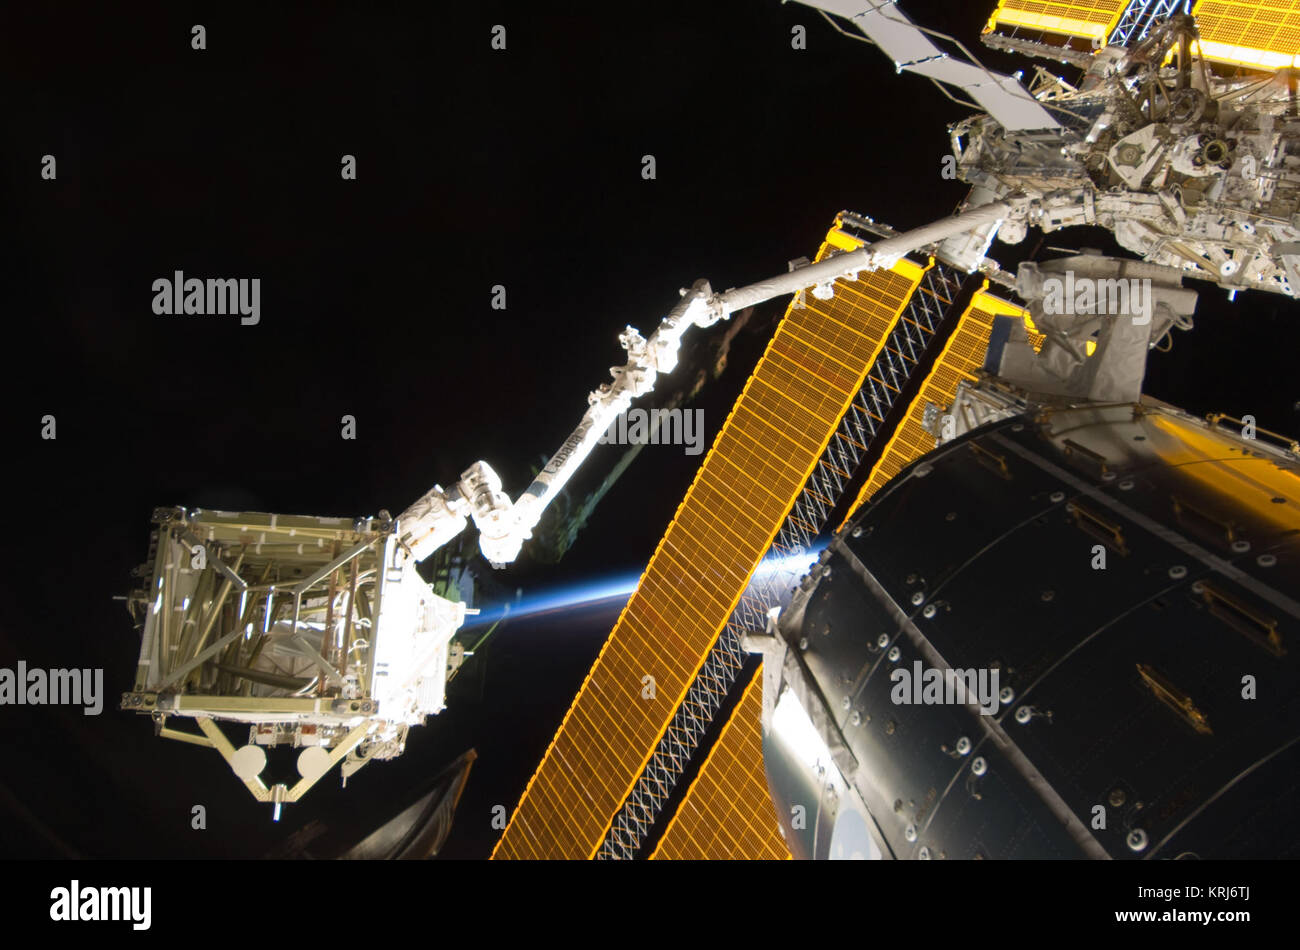 STS-119 S6 Handover - Stock Image